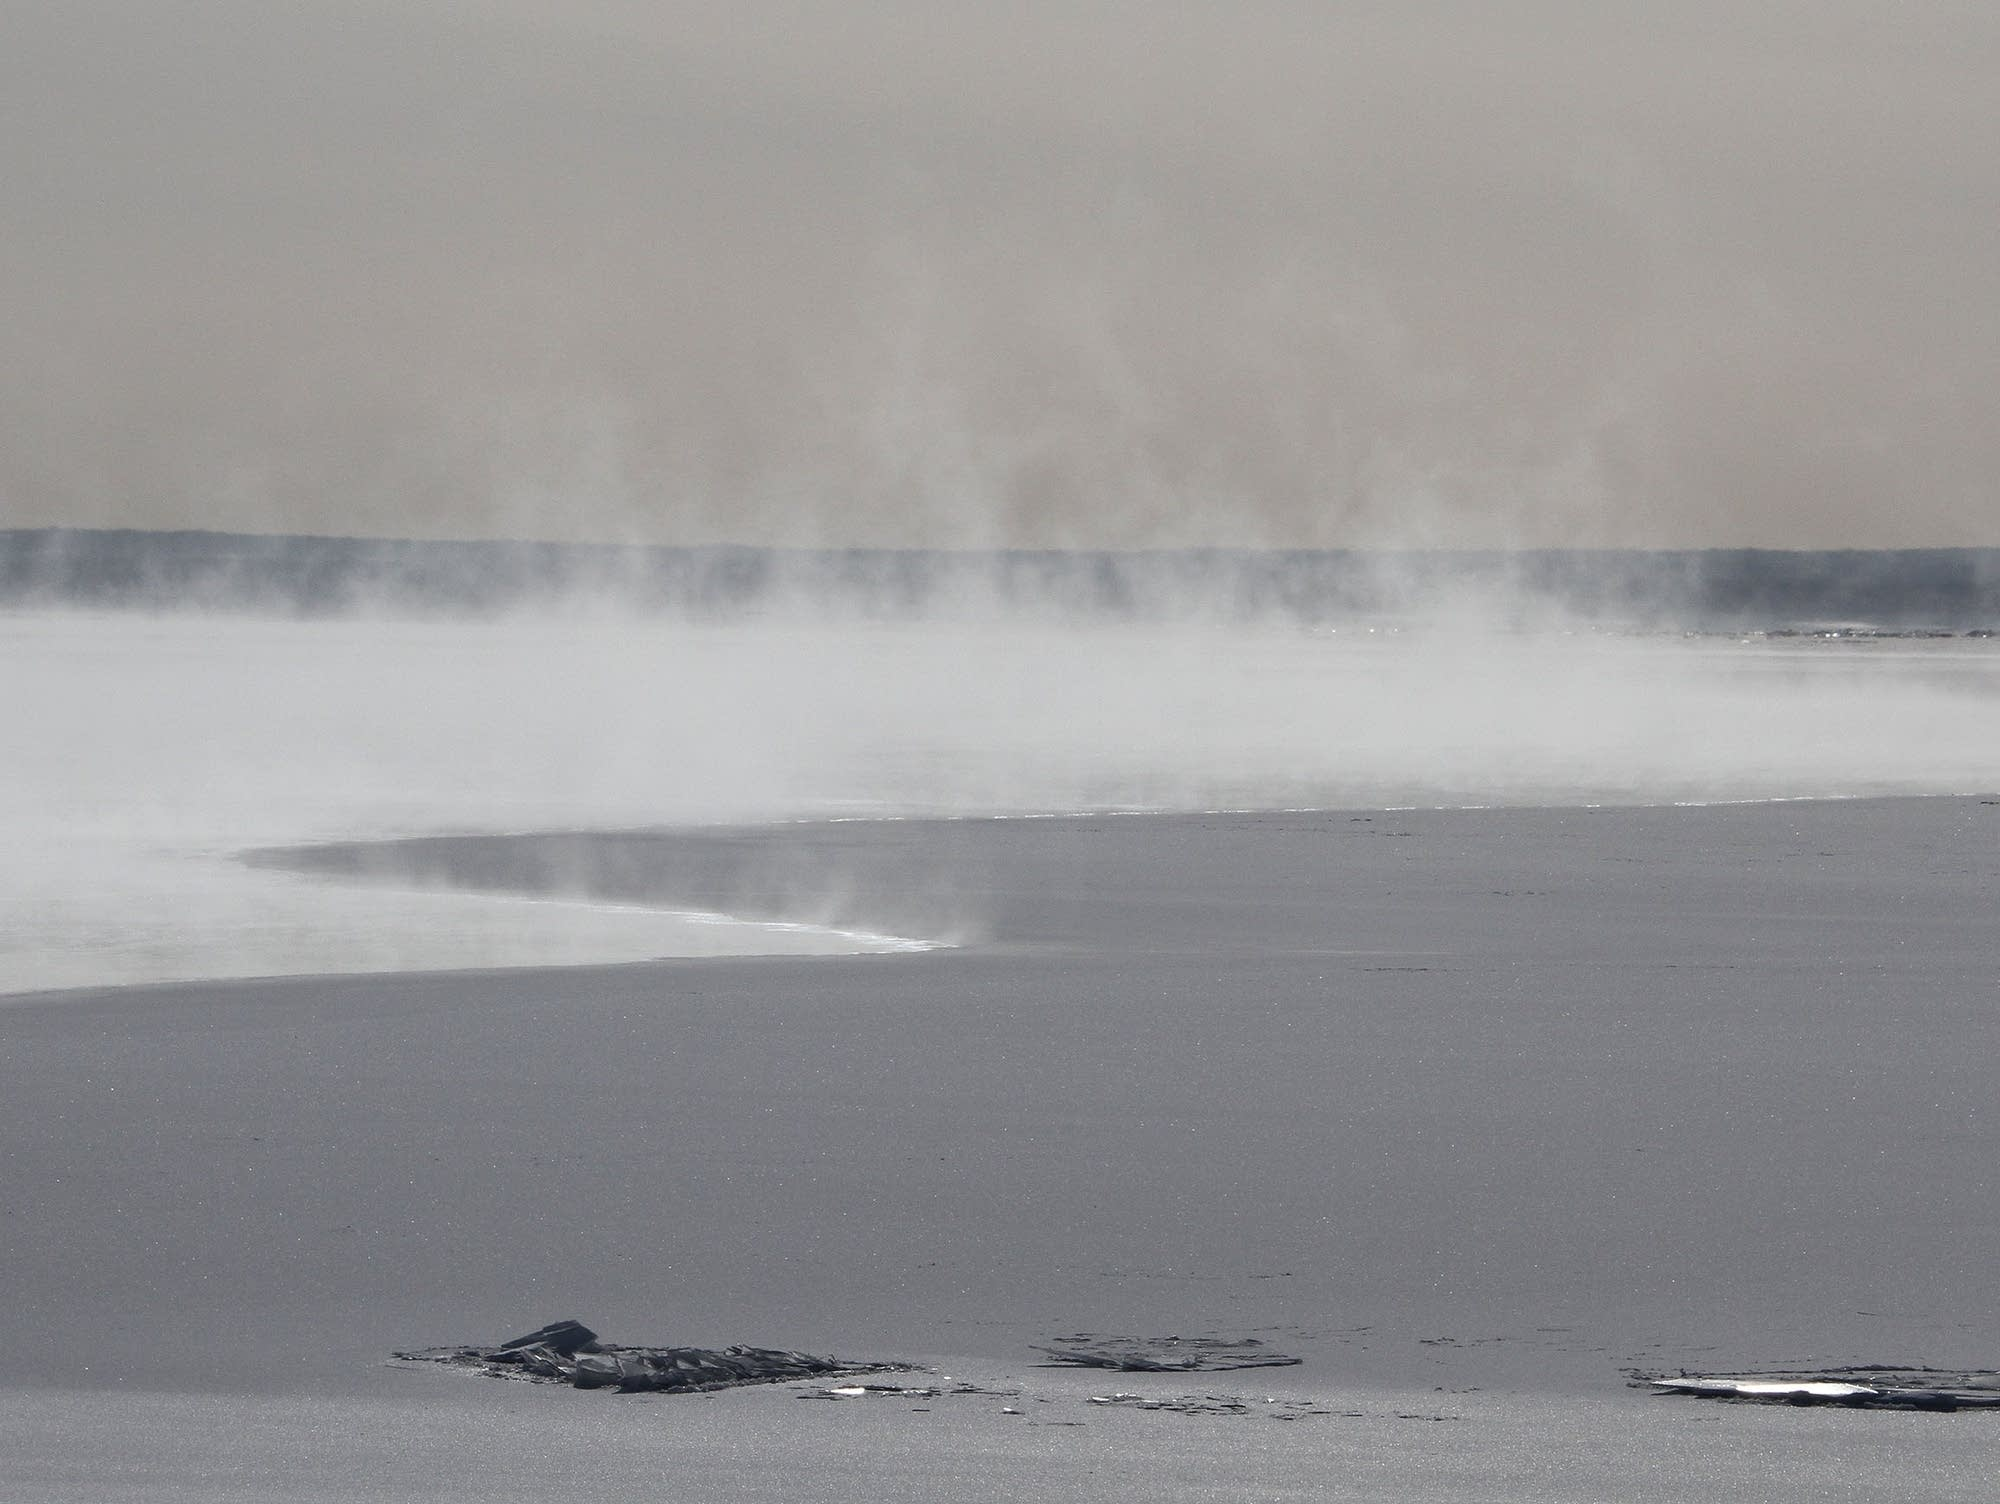 Sea smoke rises from patches of open water on Lake Superior